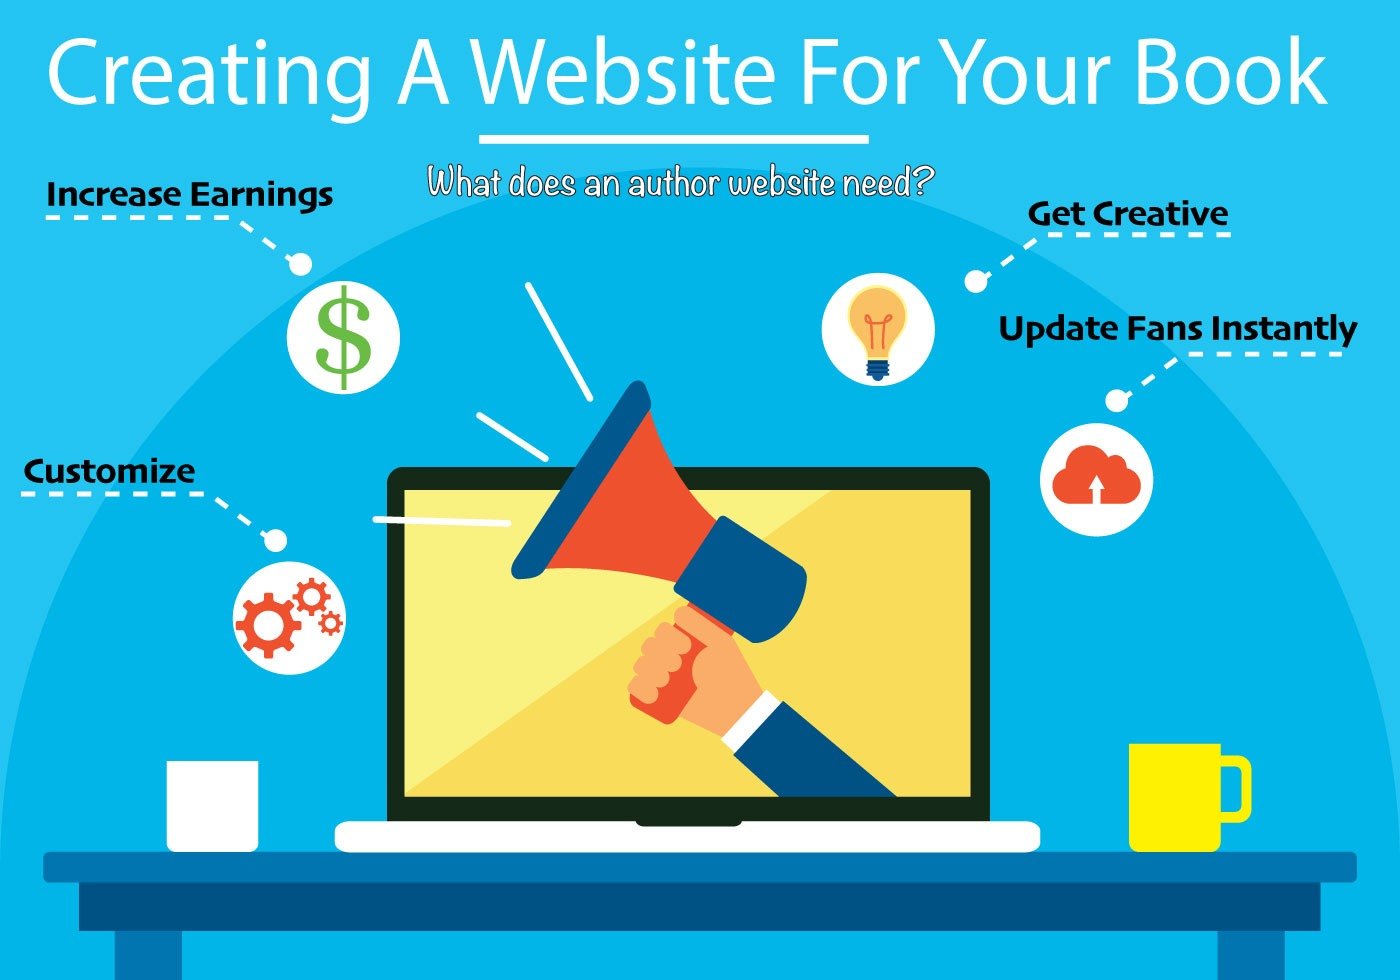 Creating A Website For Your Book: what does an author website need?